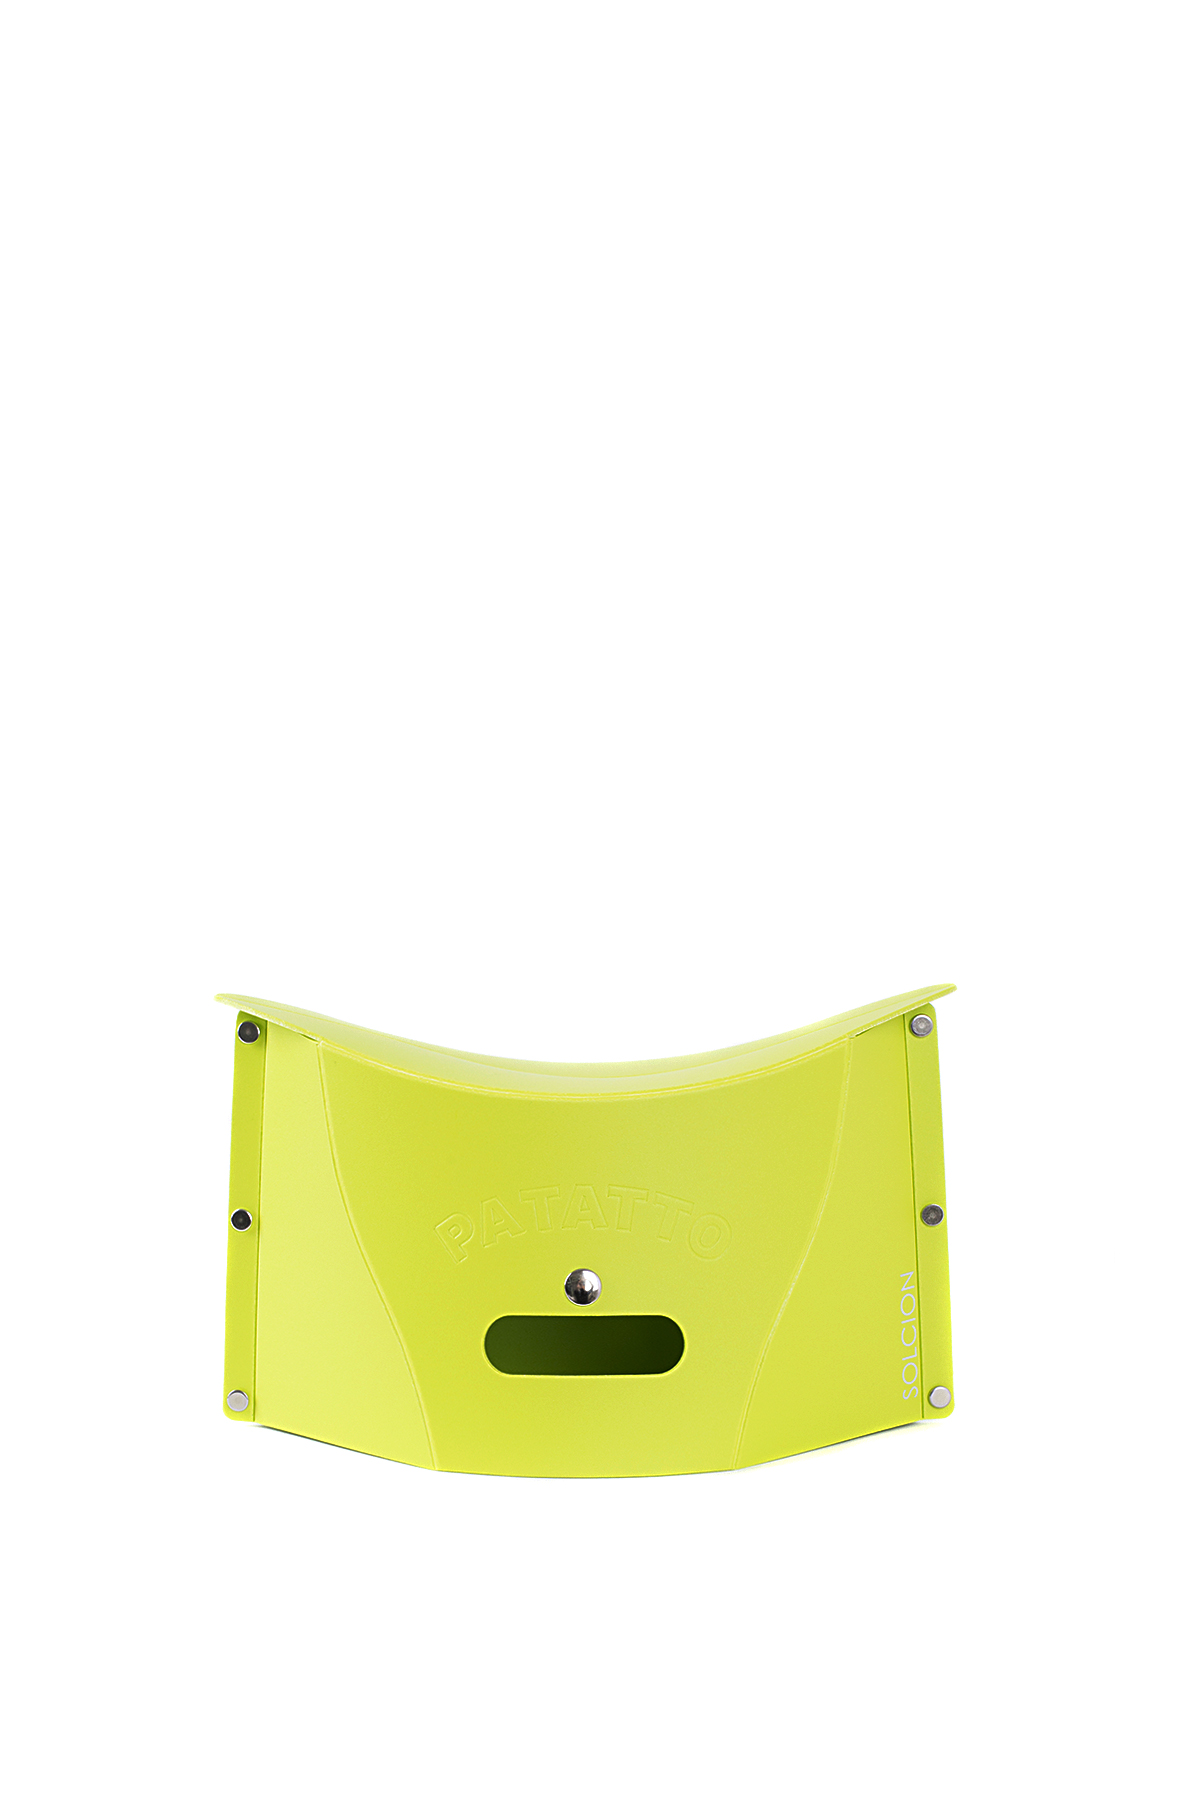 PATATTO : Comfortable Chair Mini (Yellow)